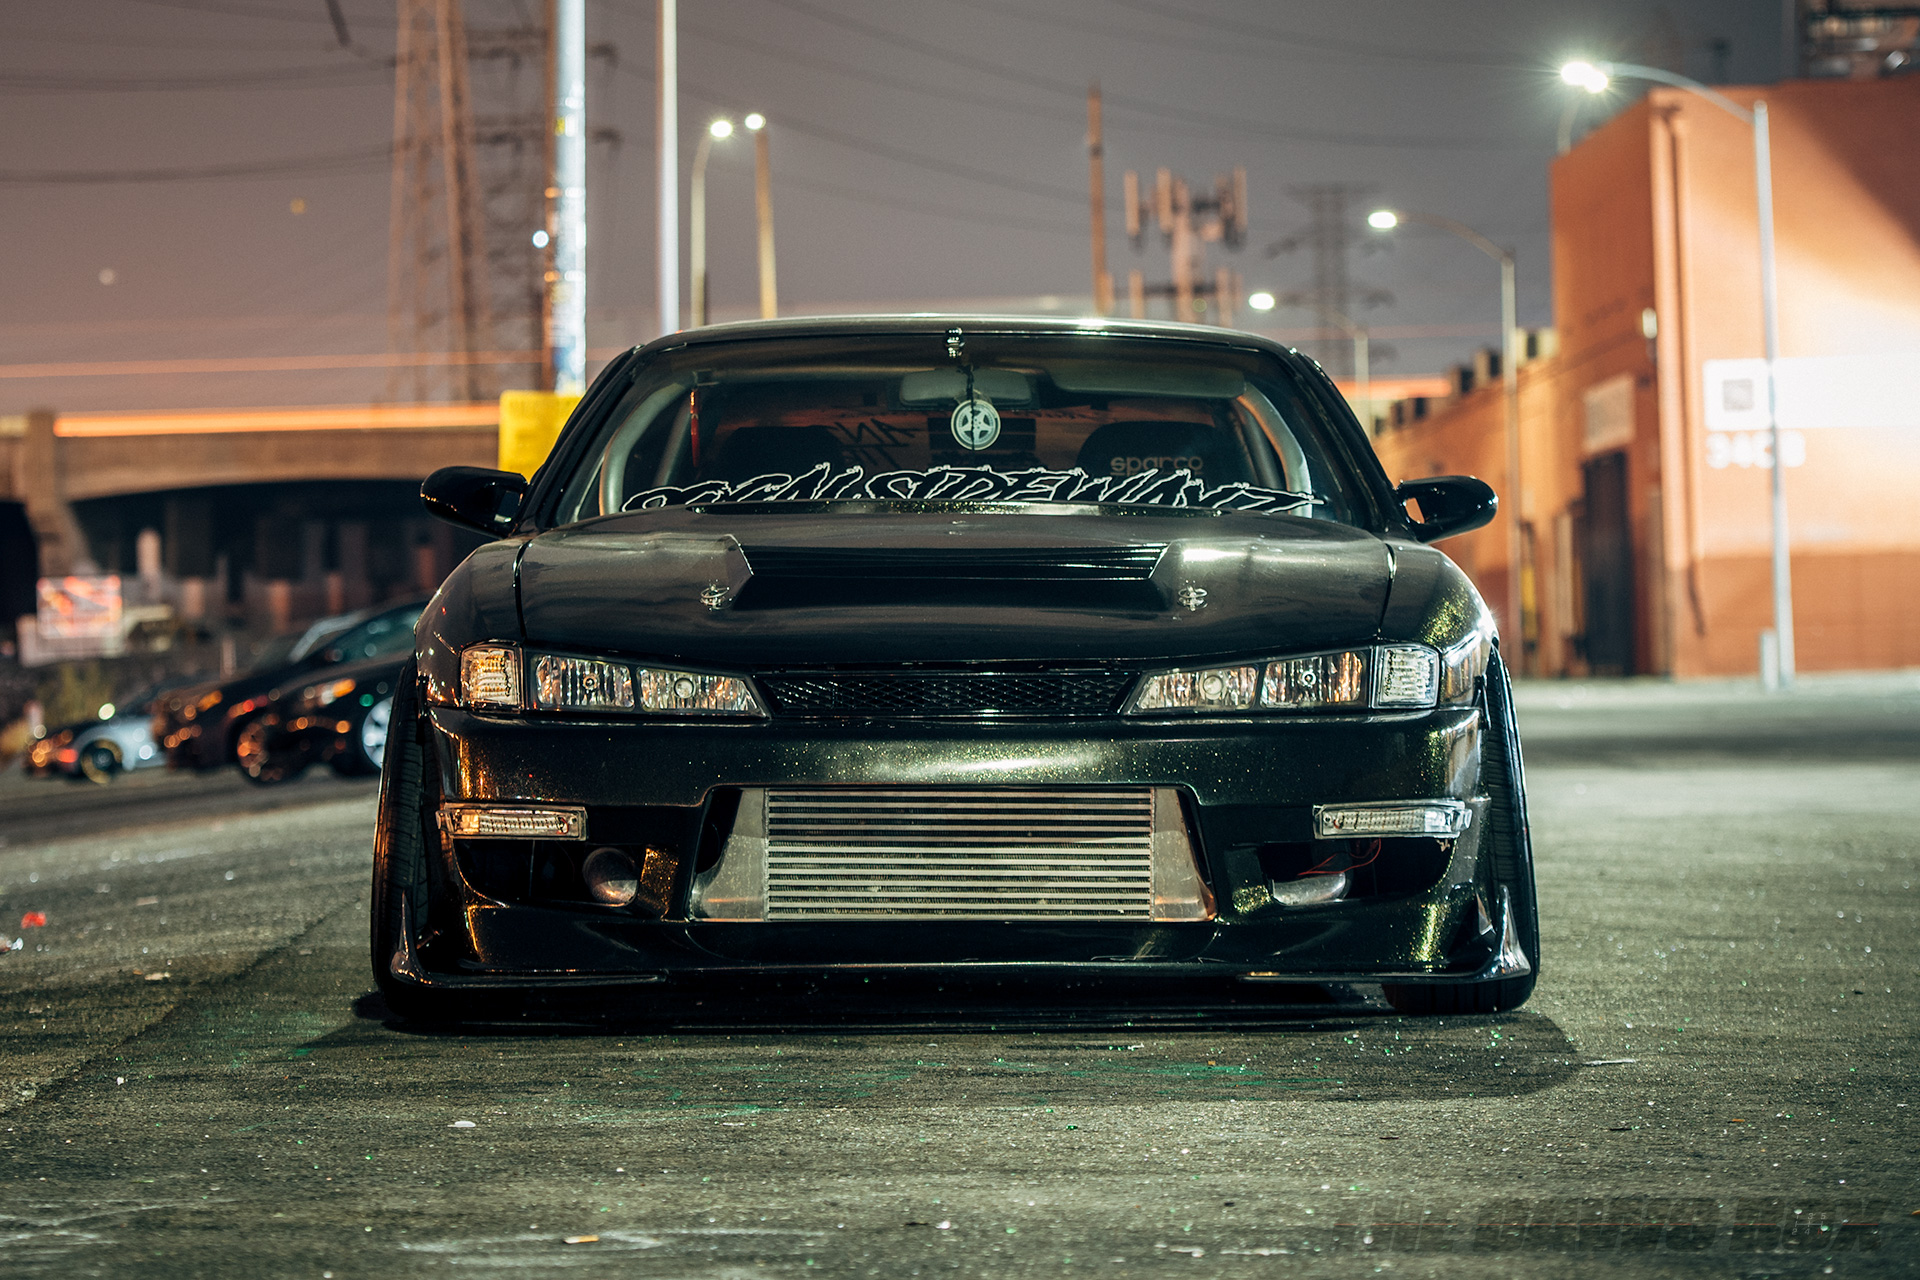 '97 nISSAN 240sx S14 Front View